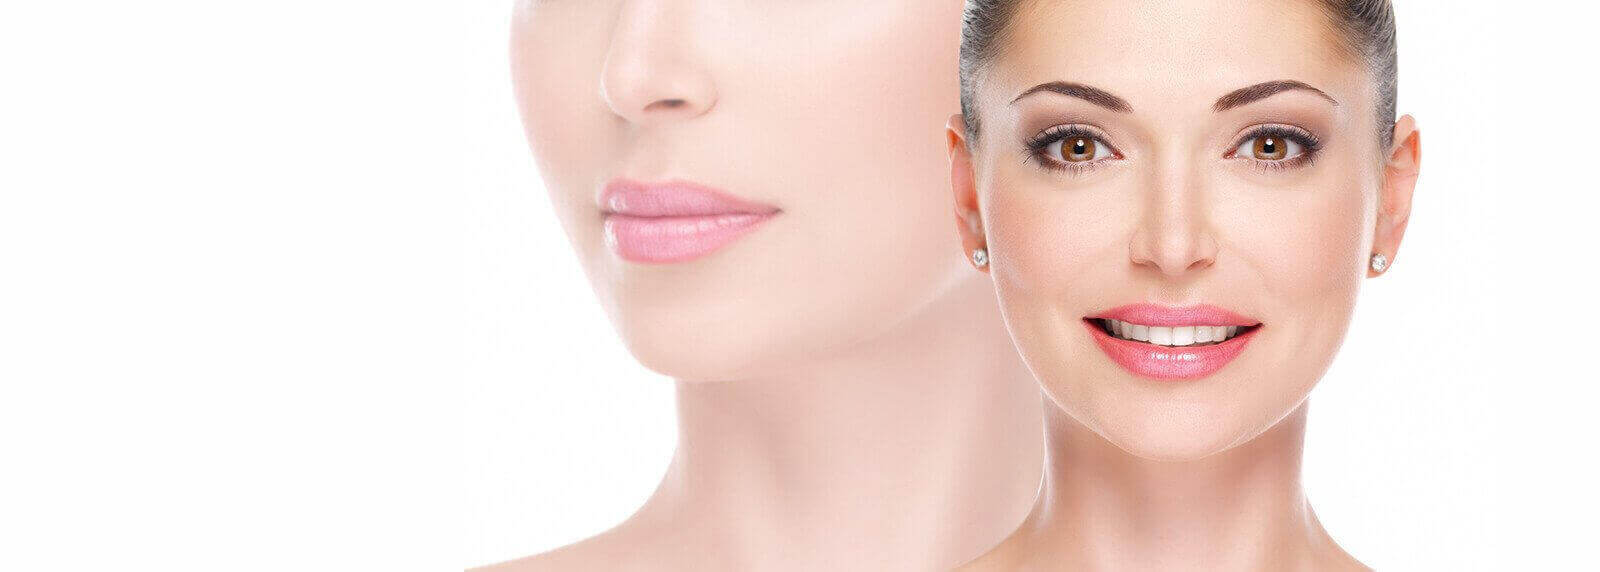 botox treatment for face